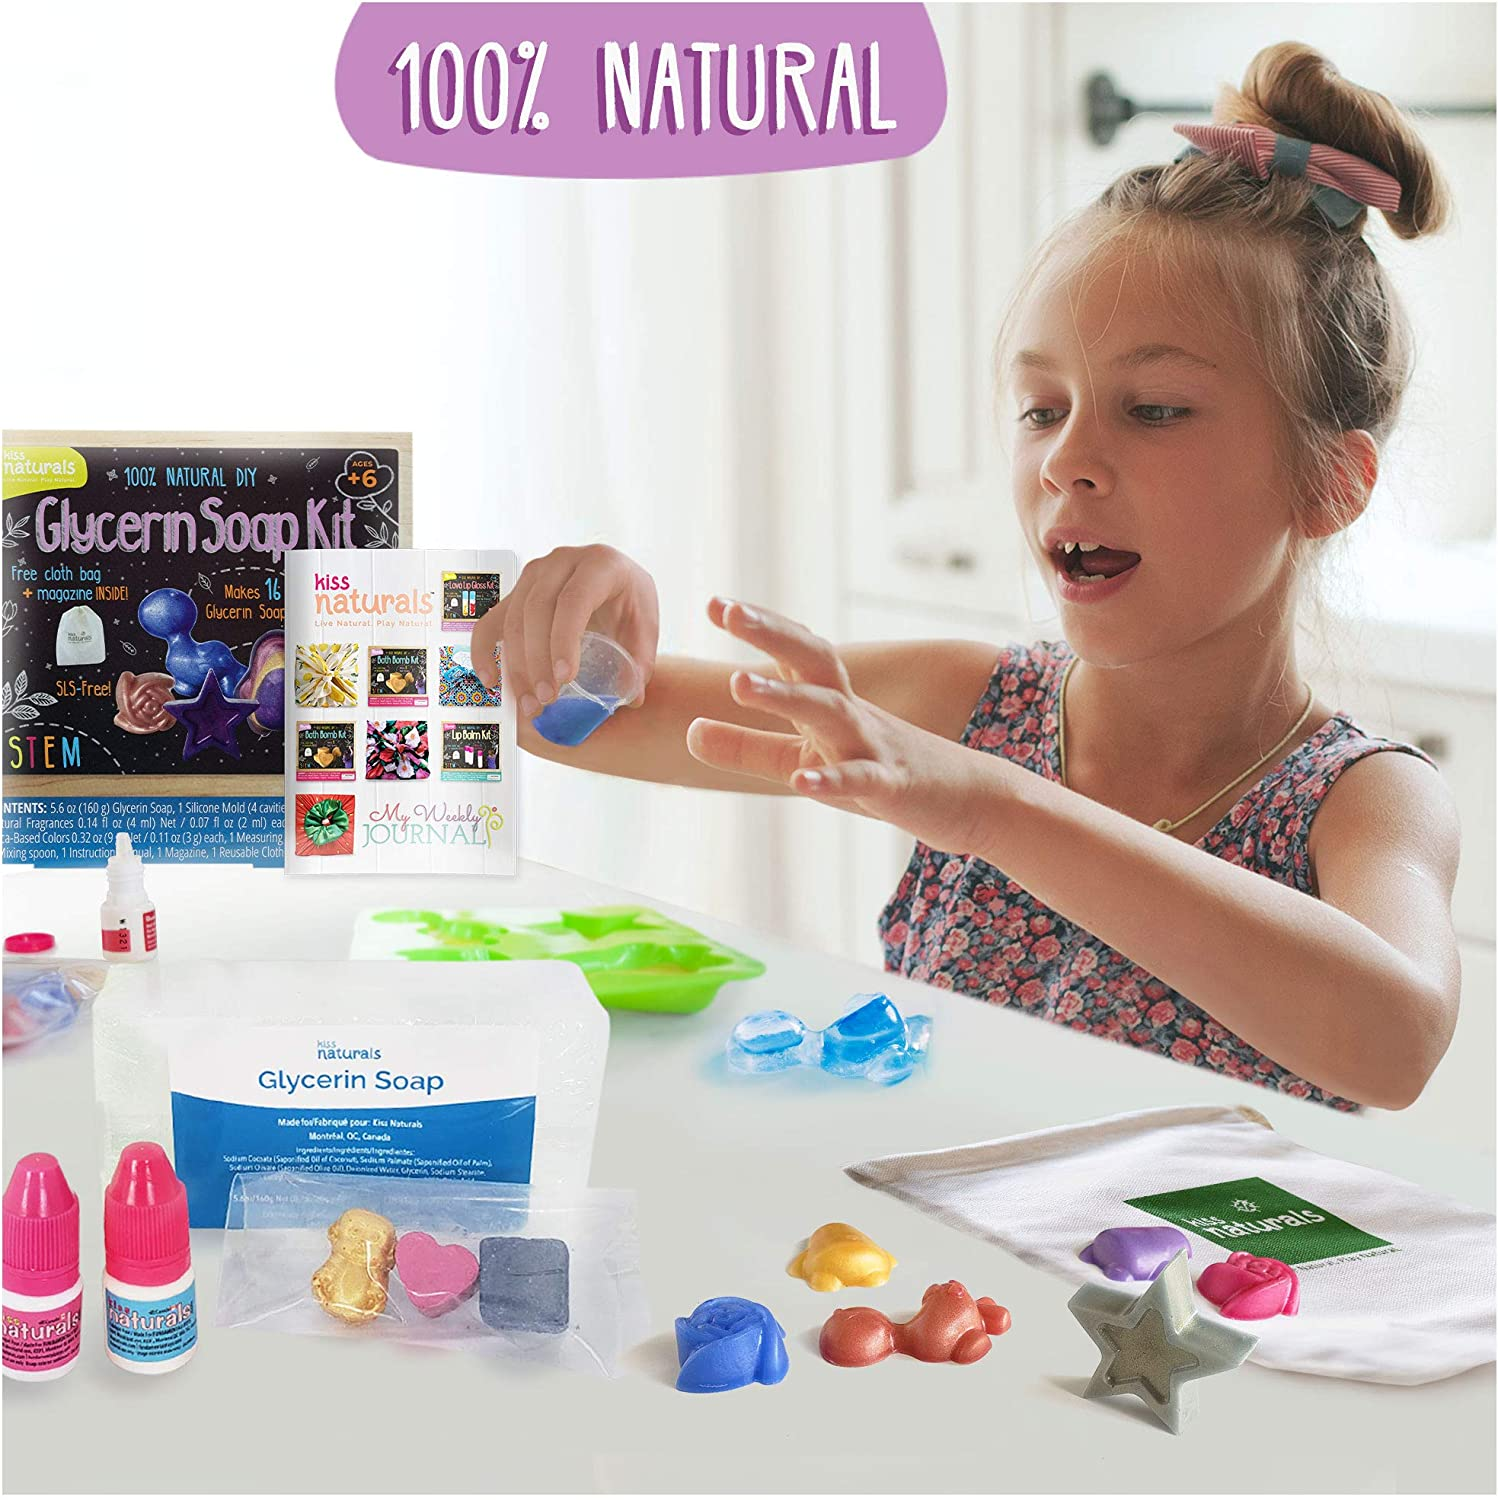 Kiss Naturals DIY Soap Making Kit for Kids - Make Your Own Soap Kit - 100% Organic and All Natural Glycerin Soap - Kids Crafts Science Kit - Made in North America